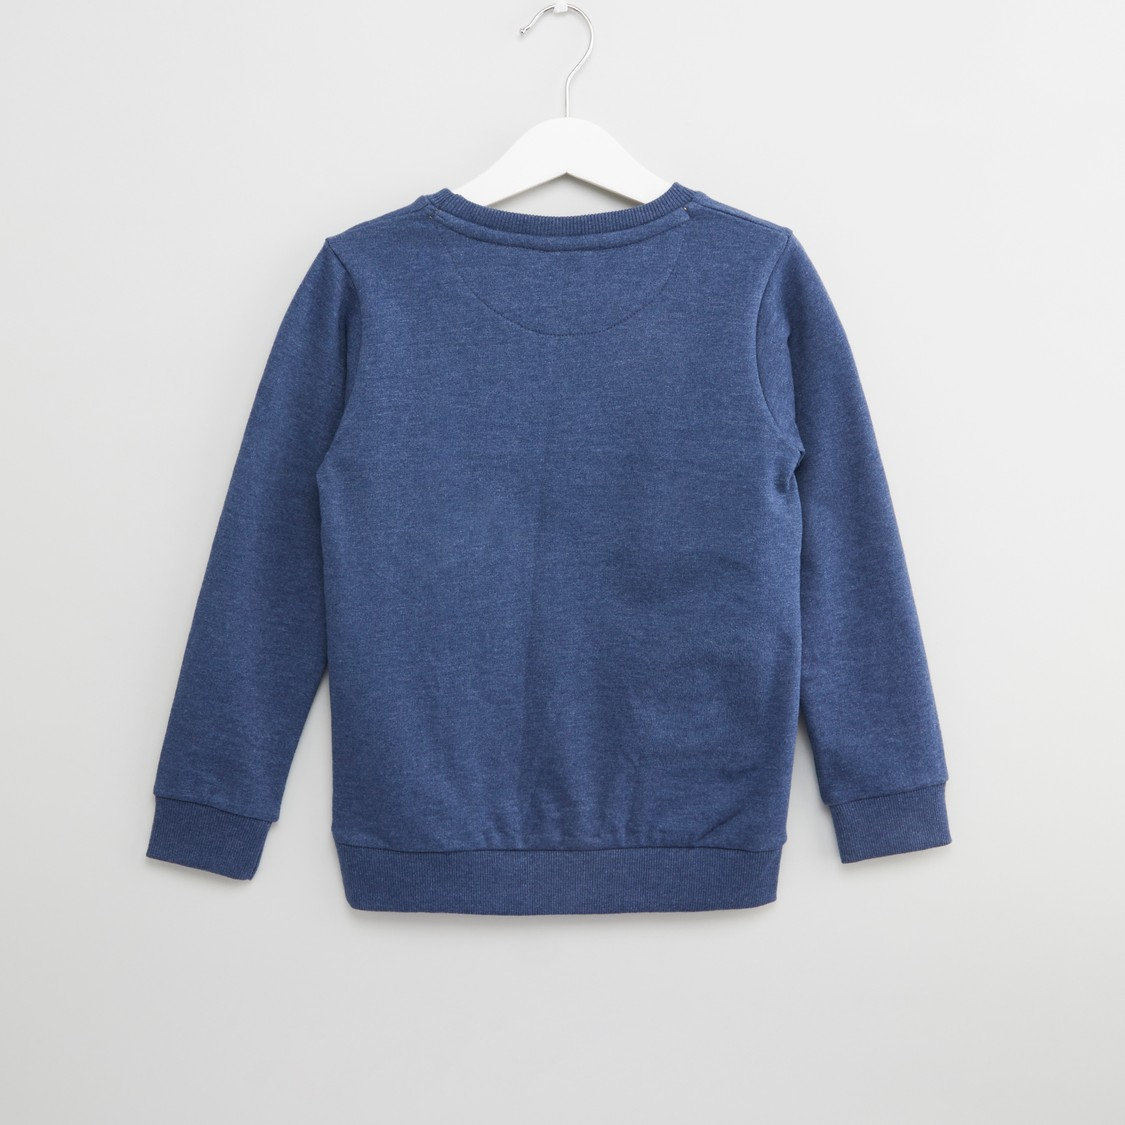 Mansoor Printed Sweatshirt with Round Neck and Long Sleeves